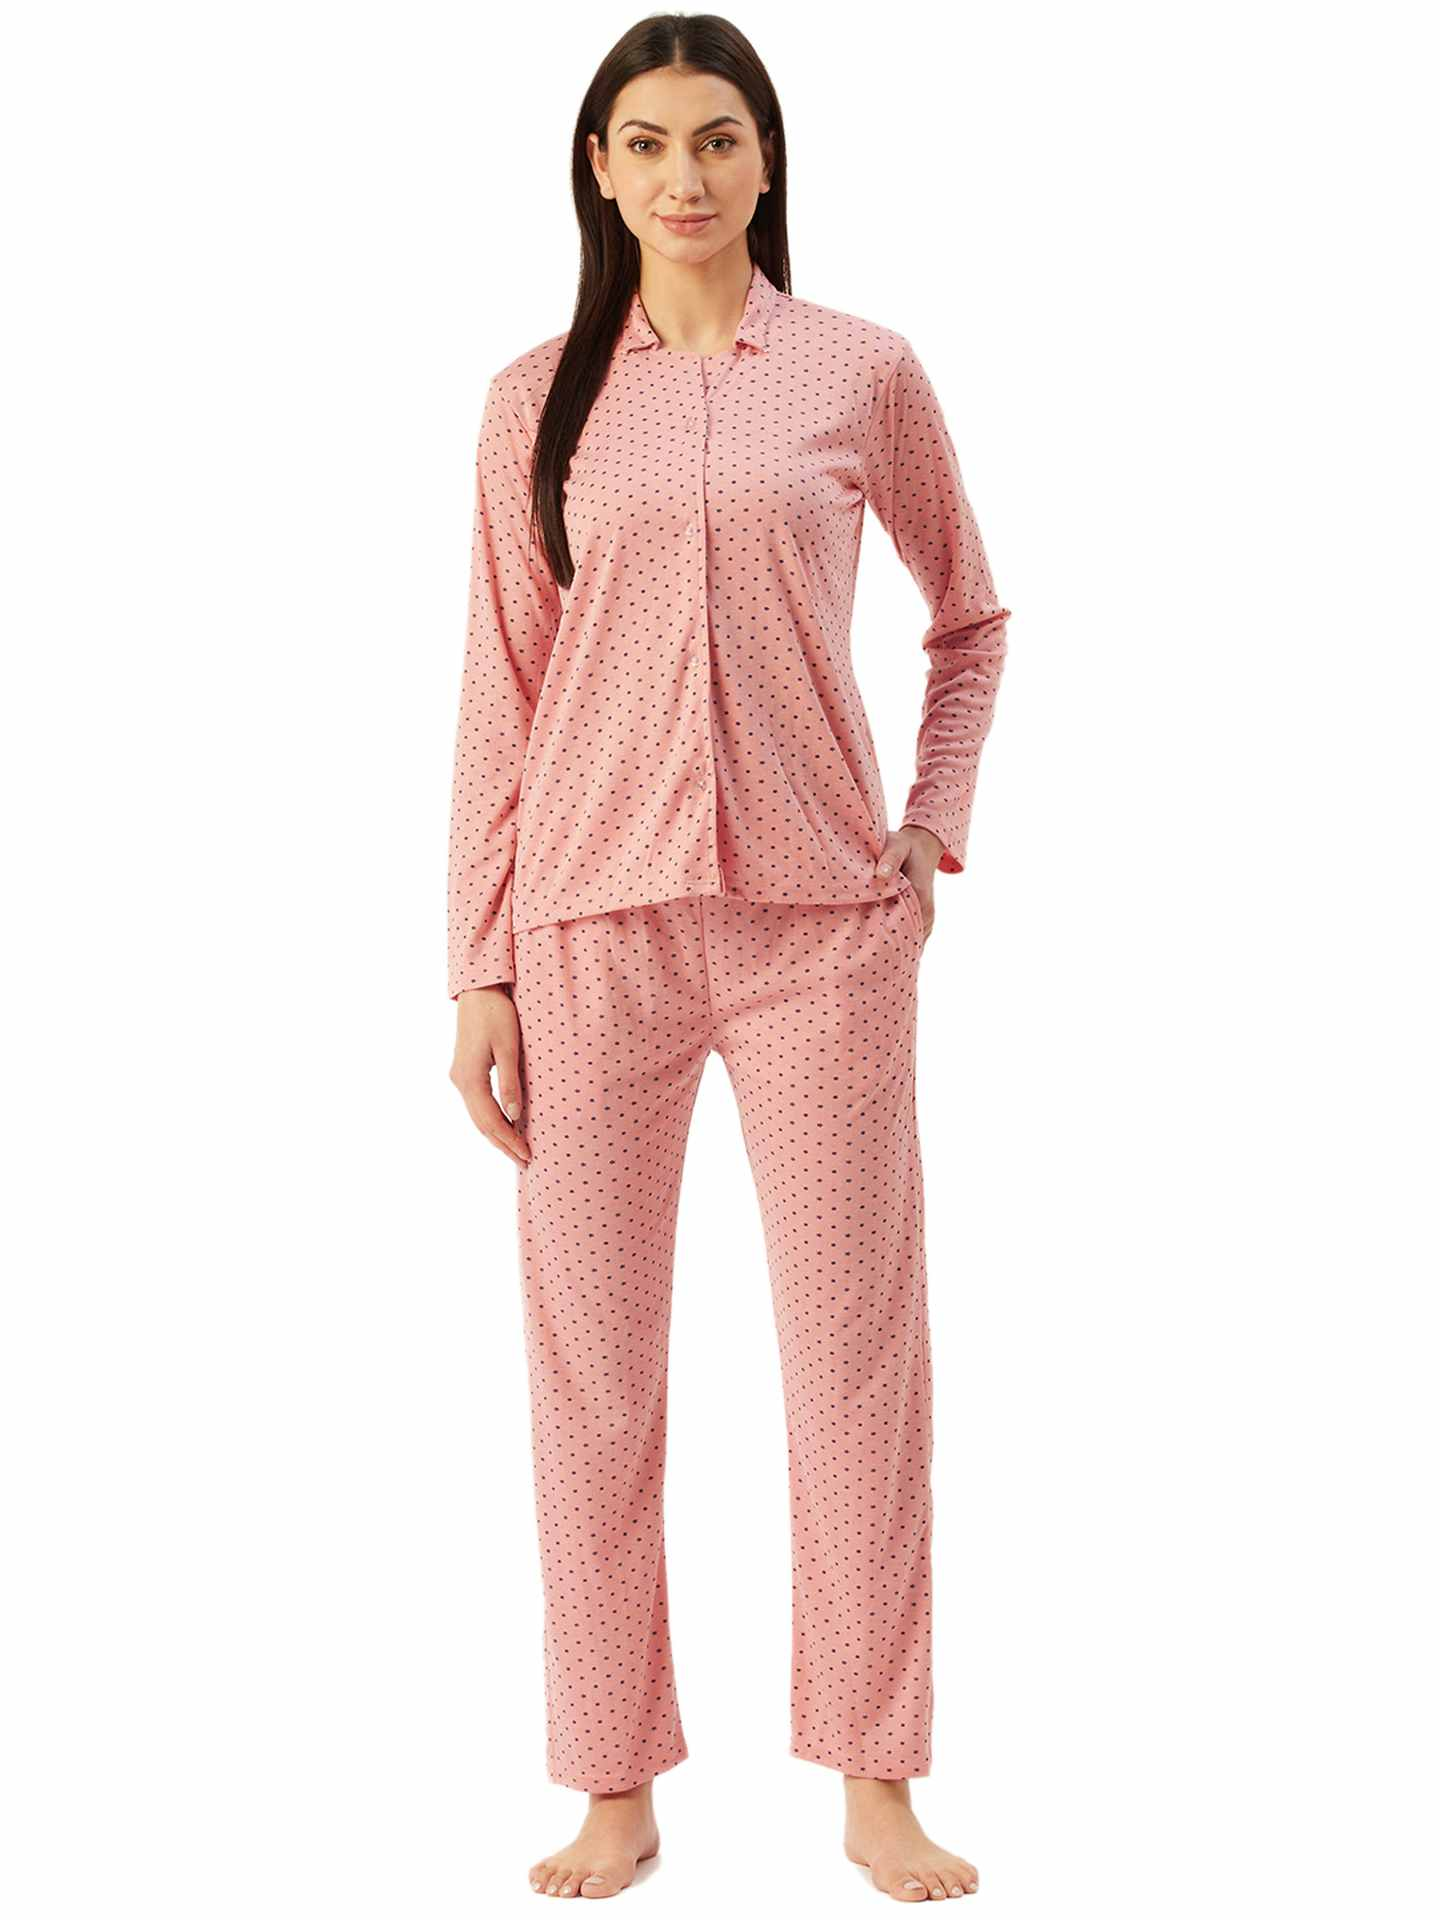 Klamotten Women's Top & Pyjama Nightsuit N72H80